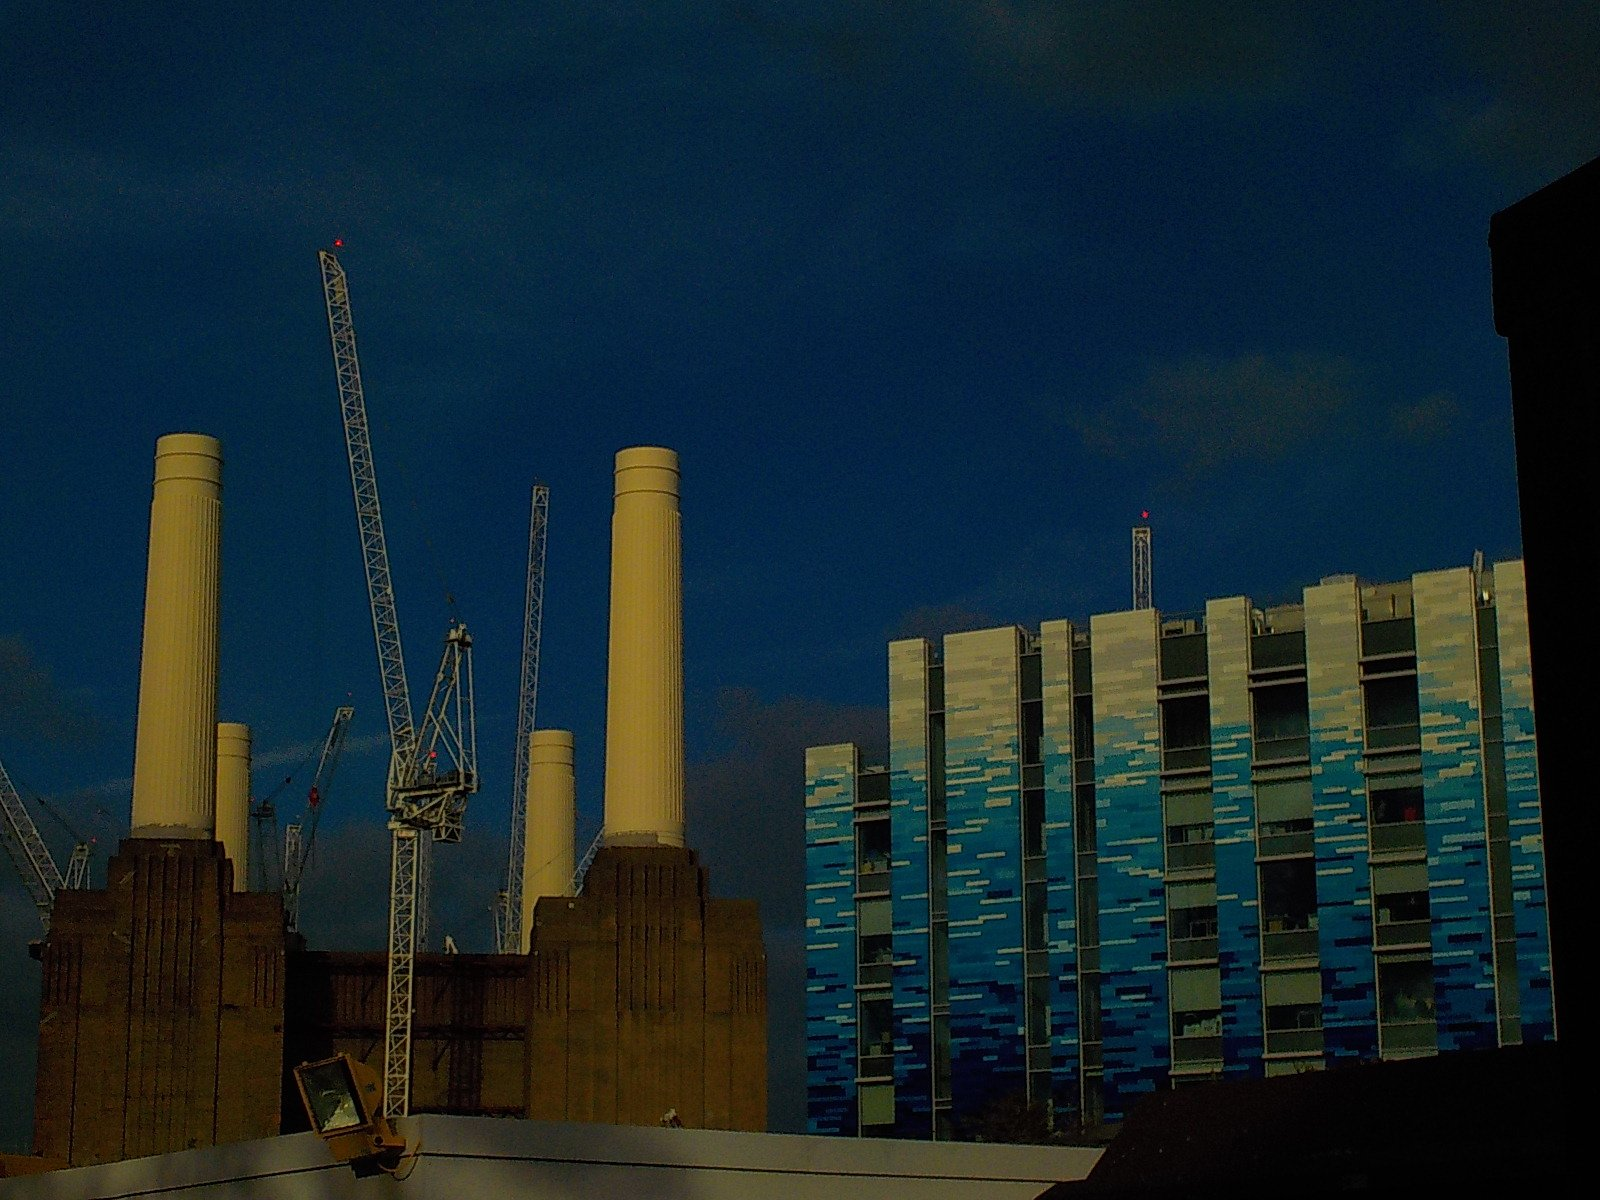 central power station 1